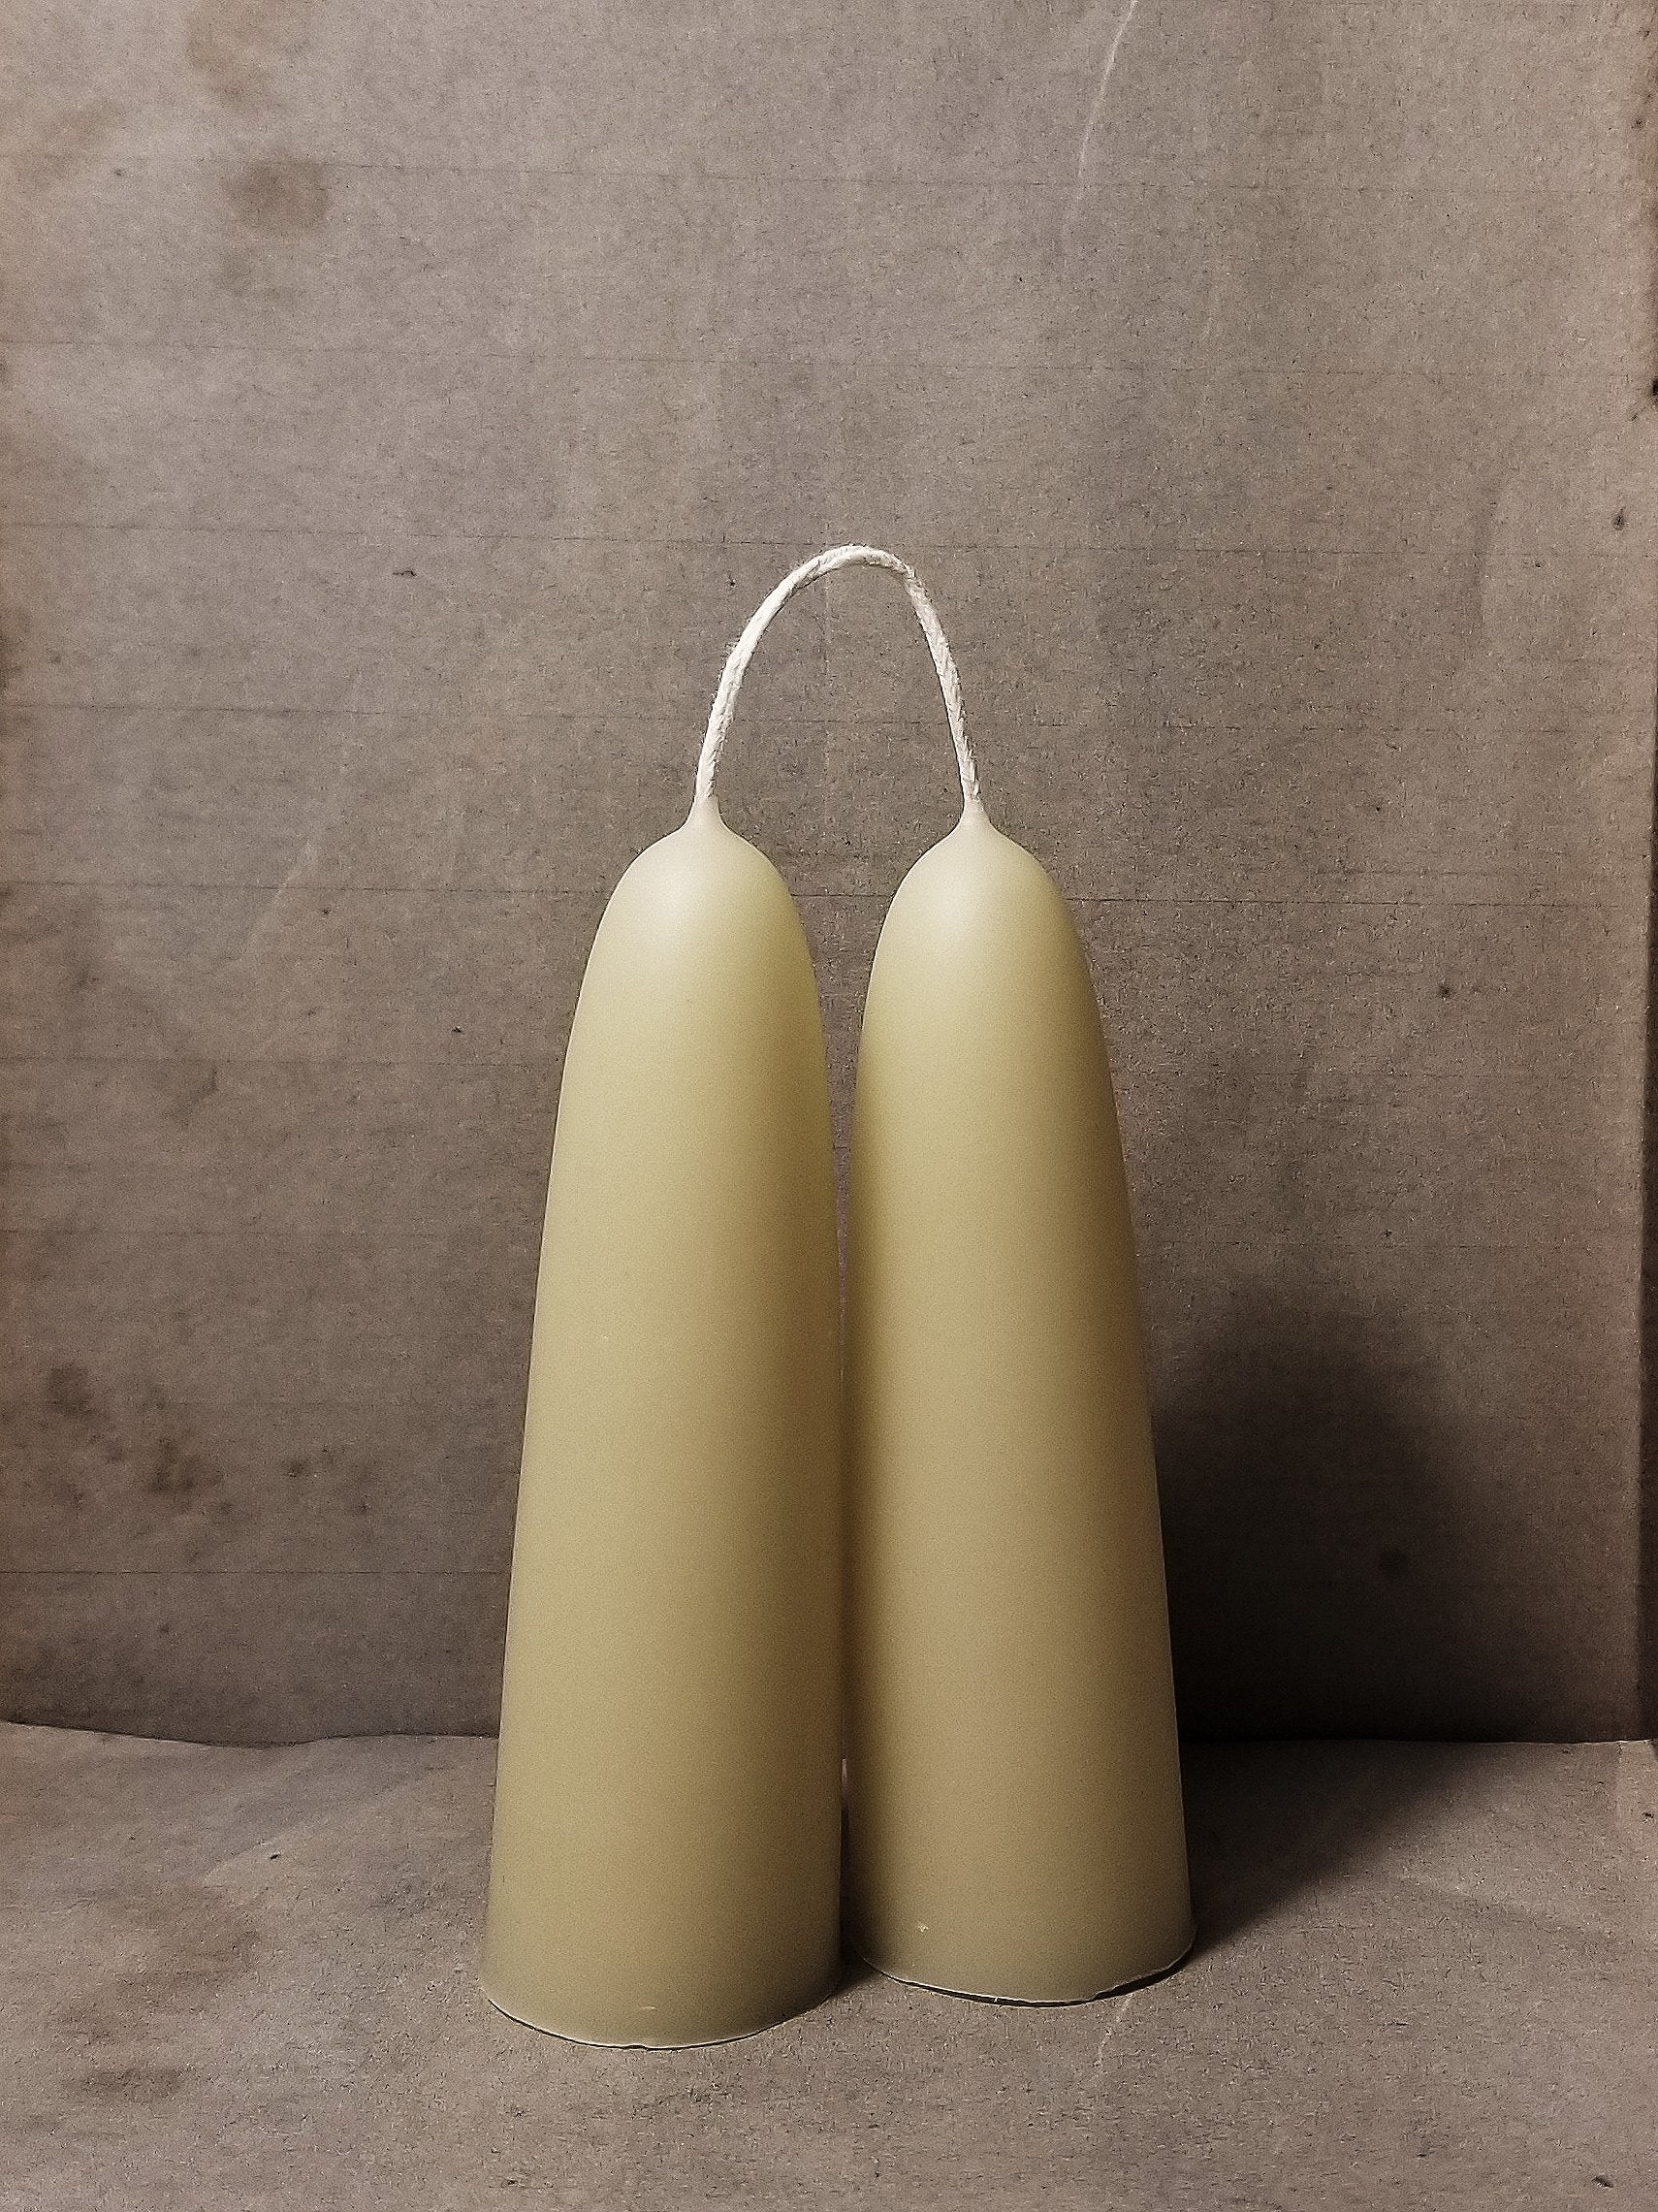 Beeswax Candles: Stubby